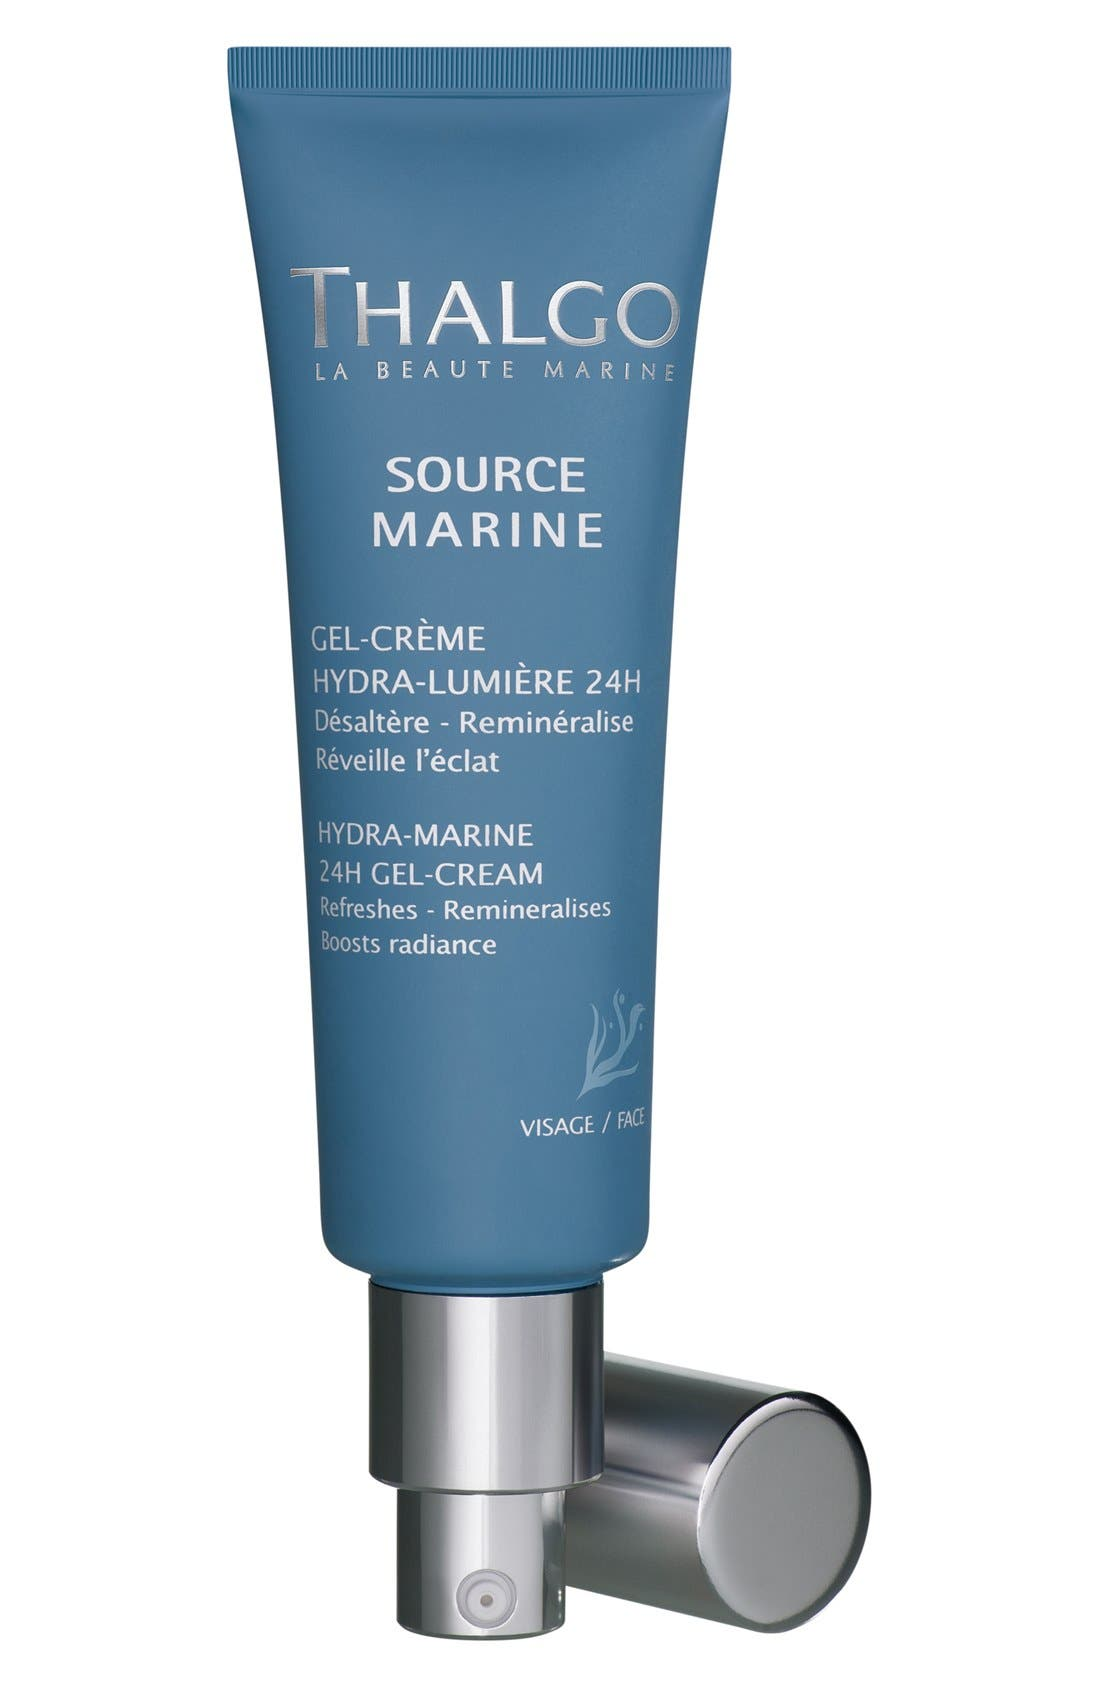 Thalgo 'Hydra-Marine 24h' Gel-Cream (Limited Edition)